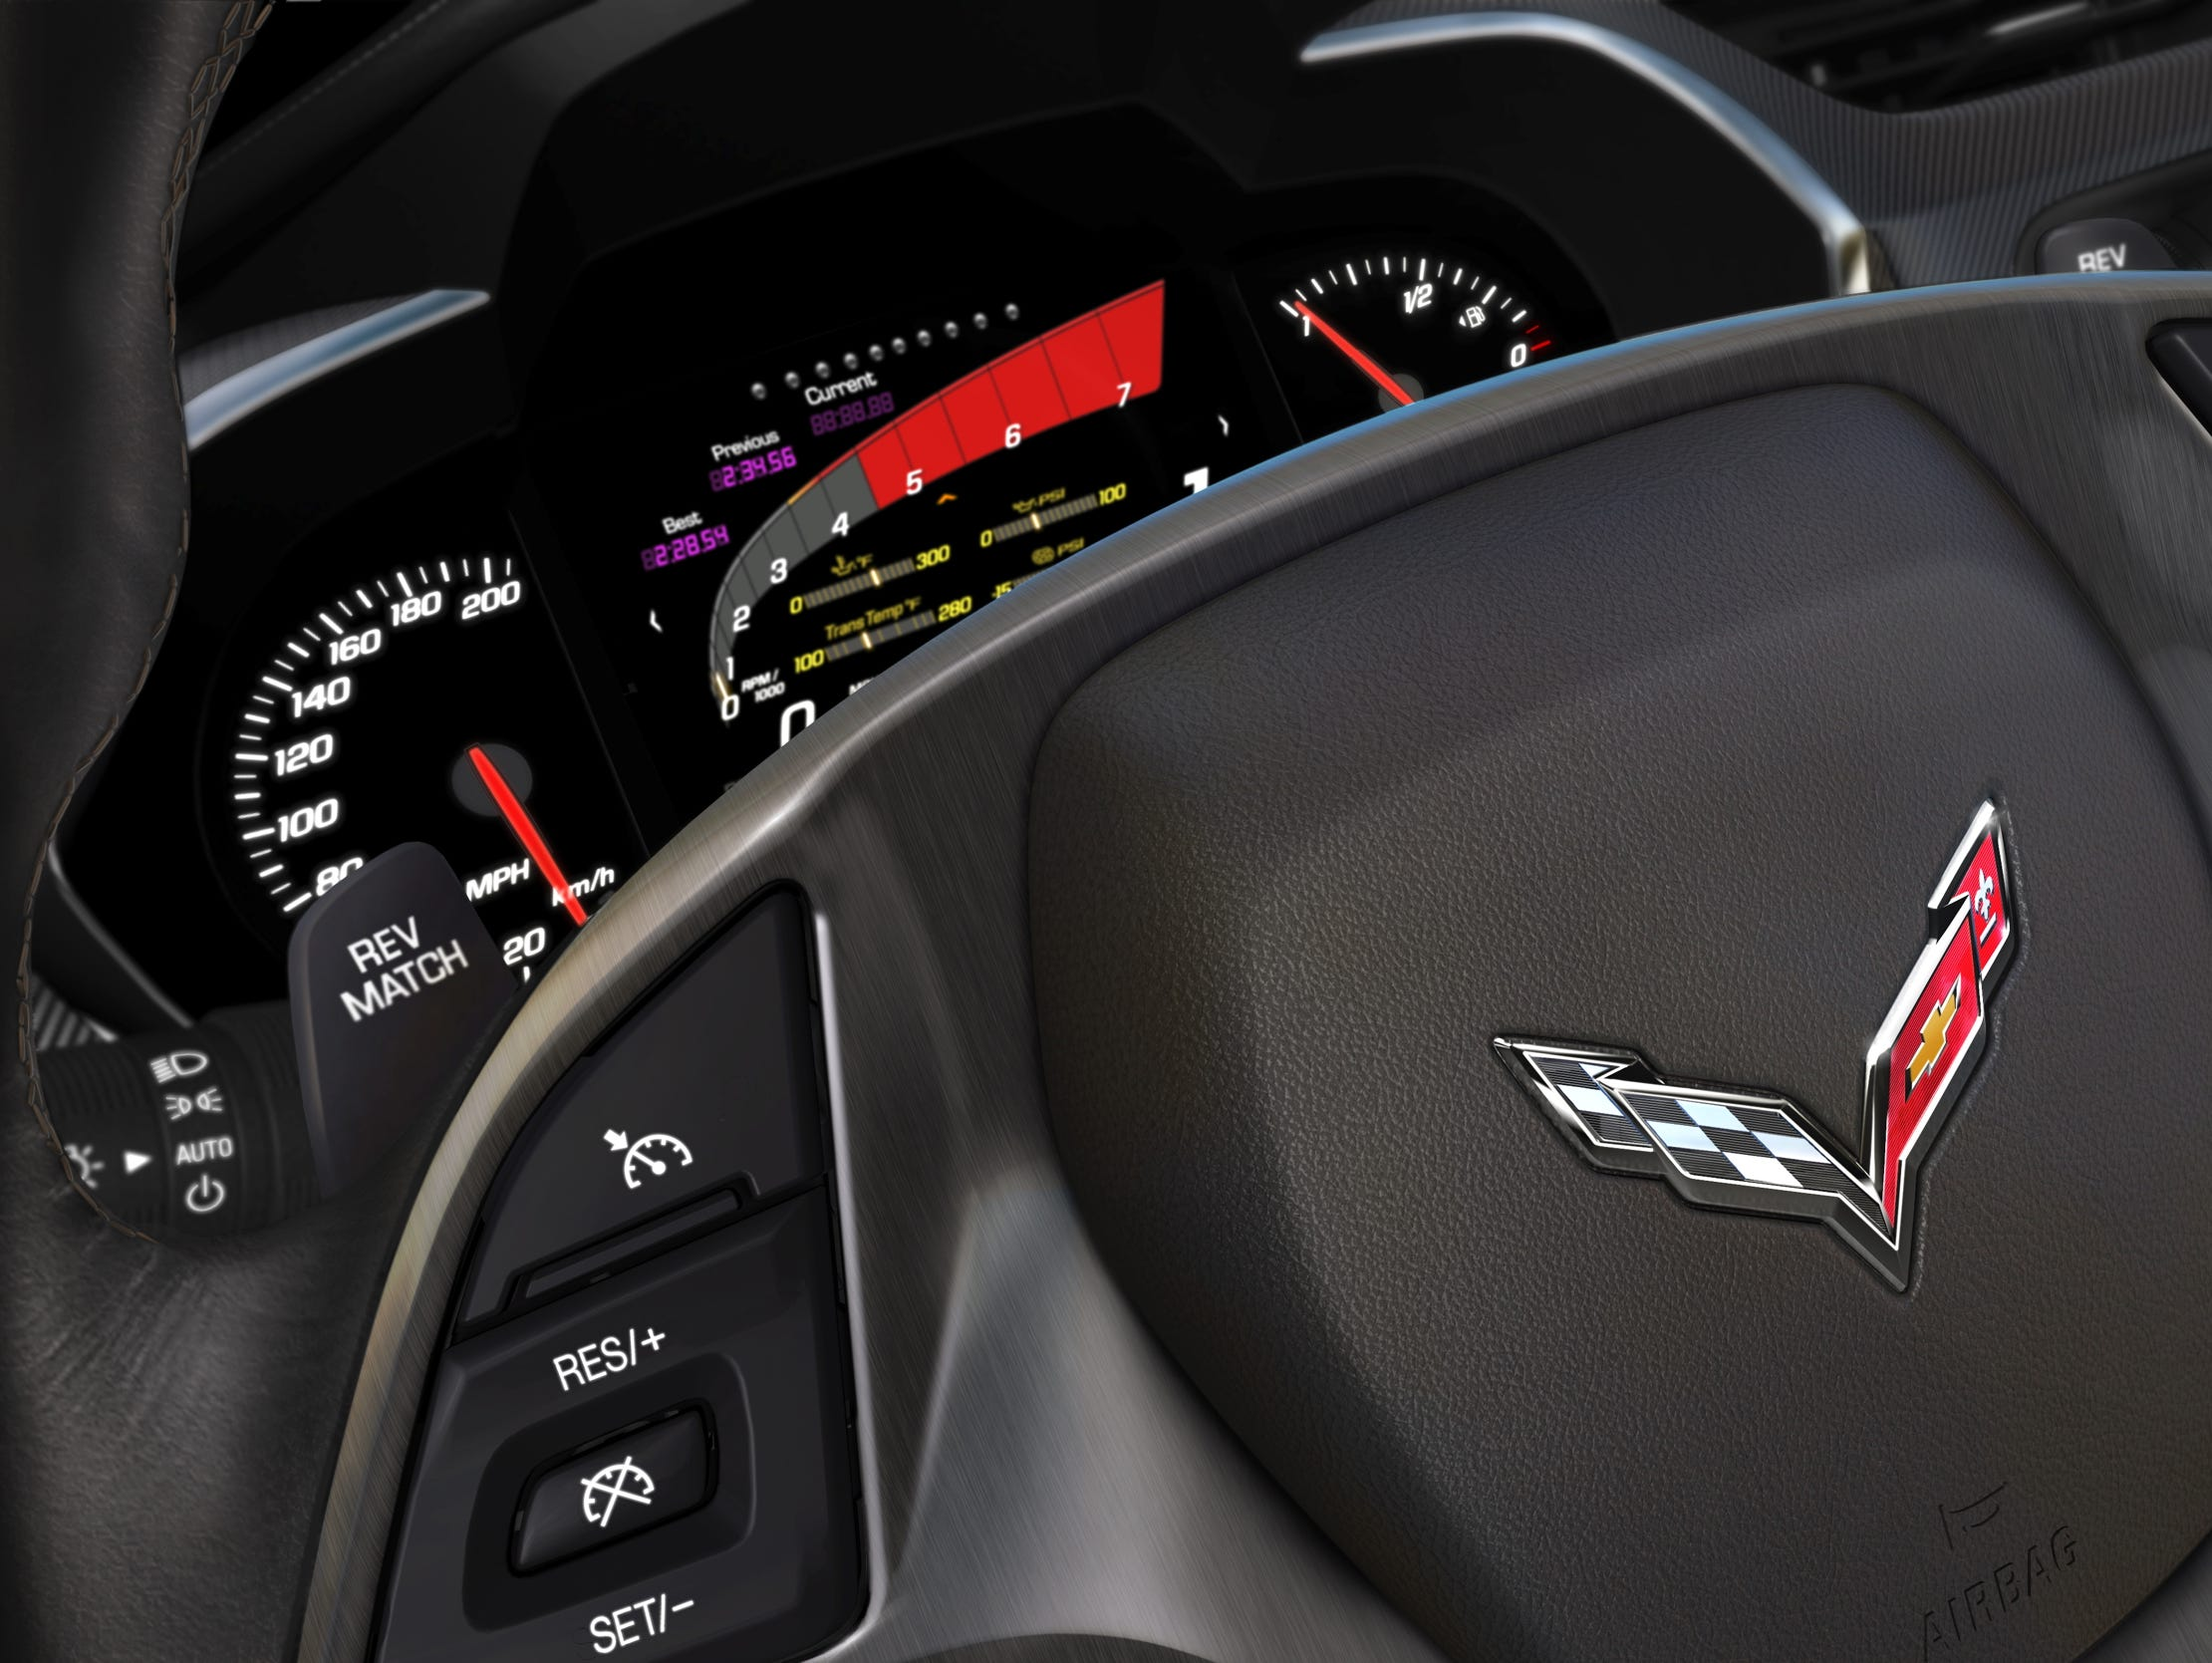 The 2014 Corvette Stingray features an 8-inch LCD screen sitting between the speedometer and the fuel and engine temperature gauges. The drive can configure the information displayed there.